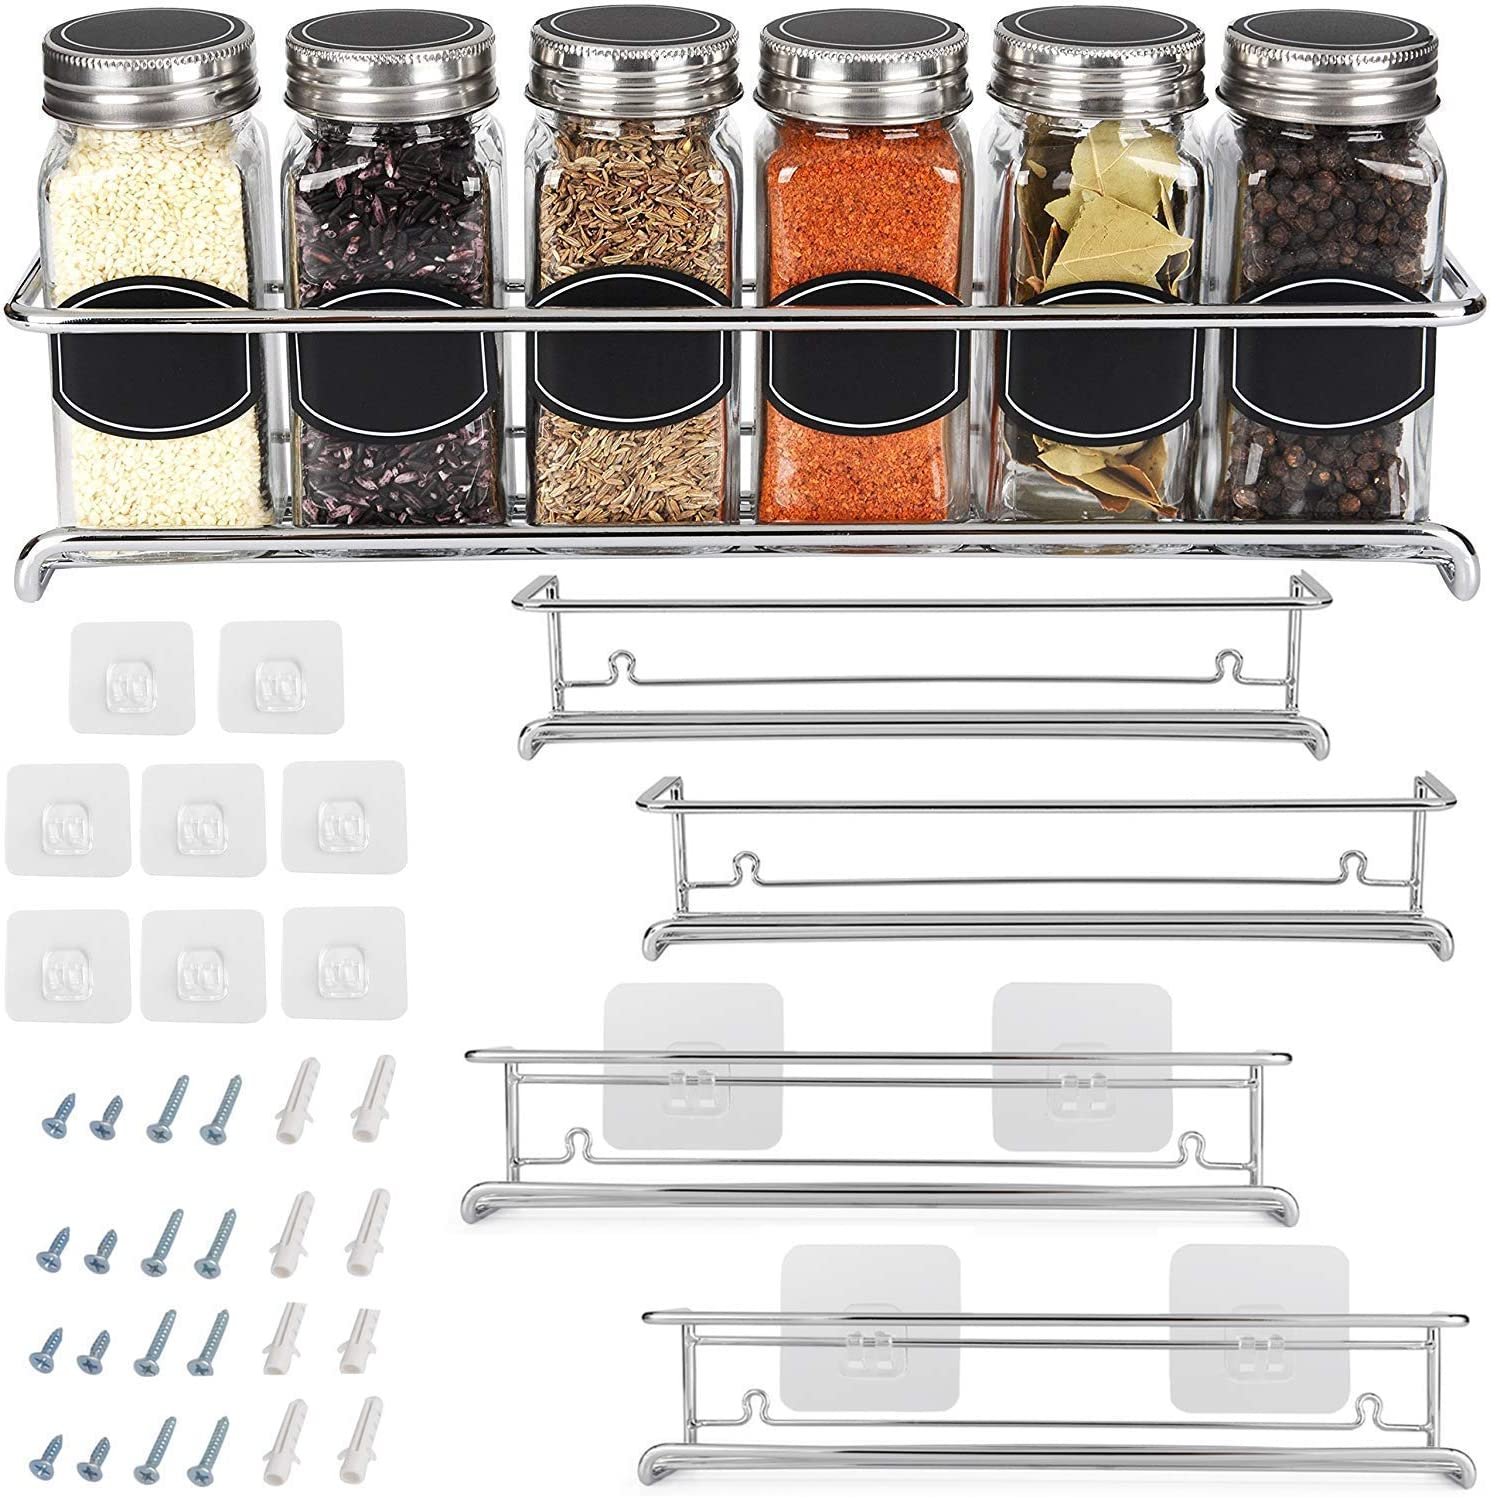 Amazon Com Spice Rack Organizer For Cabinet Door Kitchen Pantry Organization And Storage Set Of 4 Chrome Tiered Hanging Shelf For Spice Jars And Seasonings Door Mount Wall Mounted Under Sink